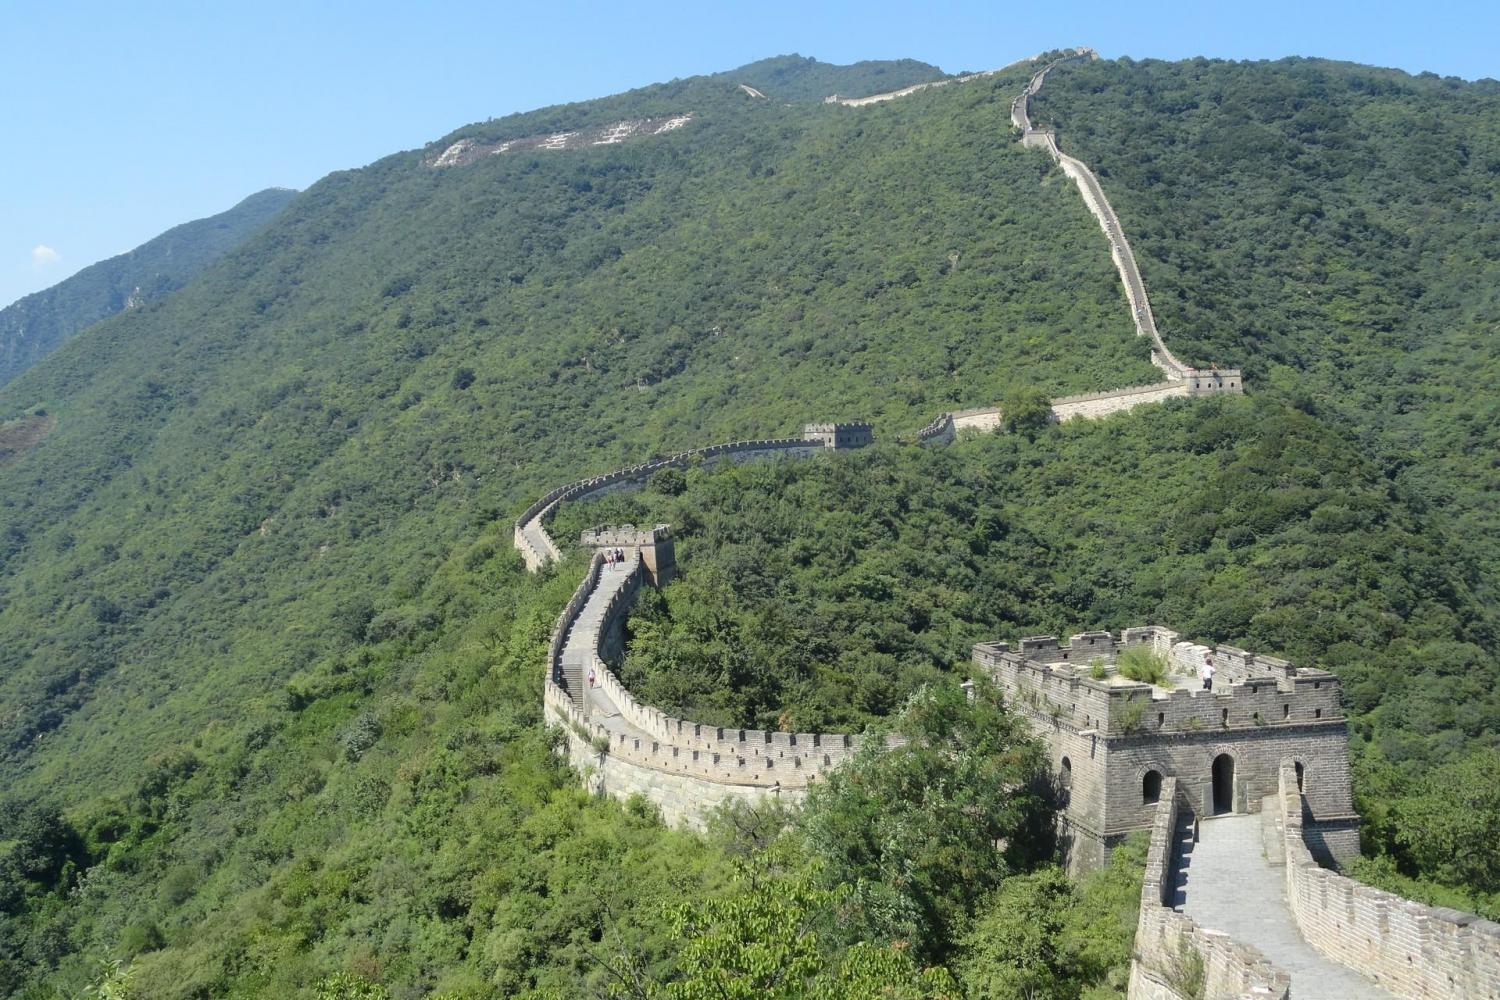 Mutianyu section of the Great Wall. A breathtaking experience!